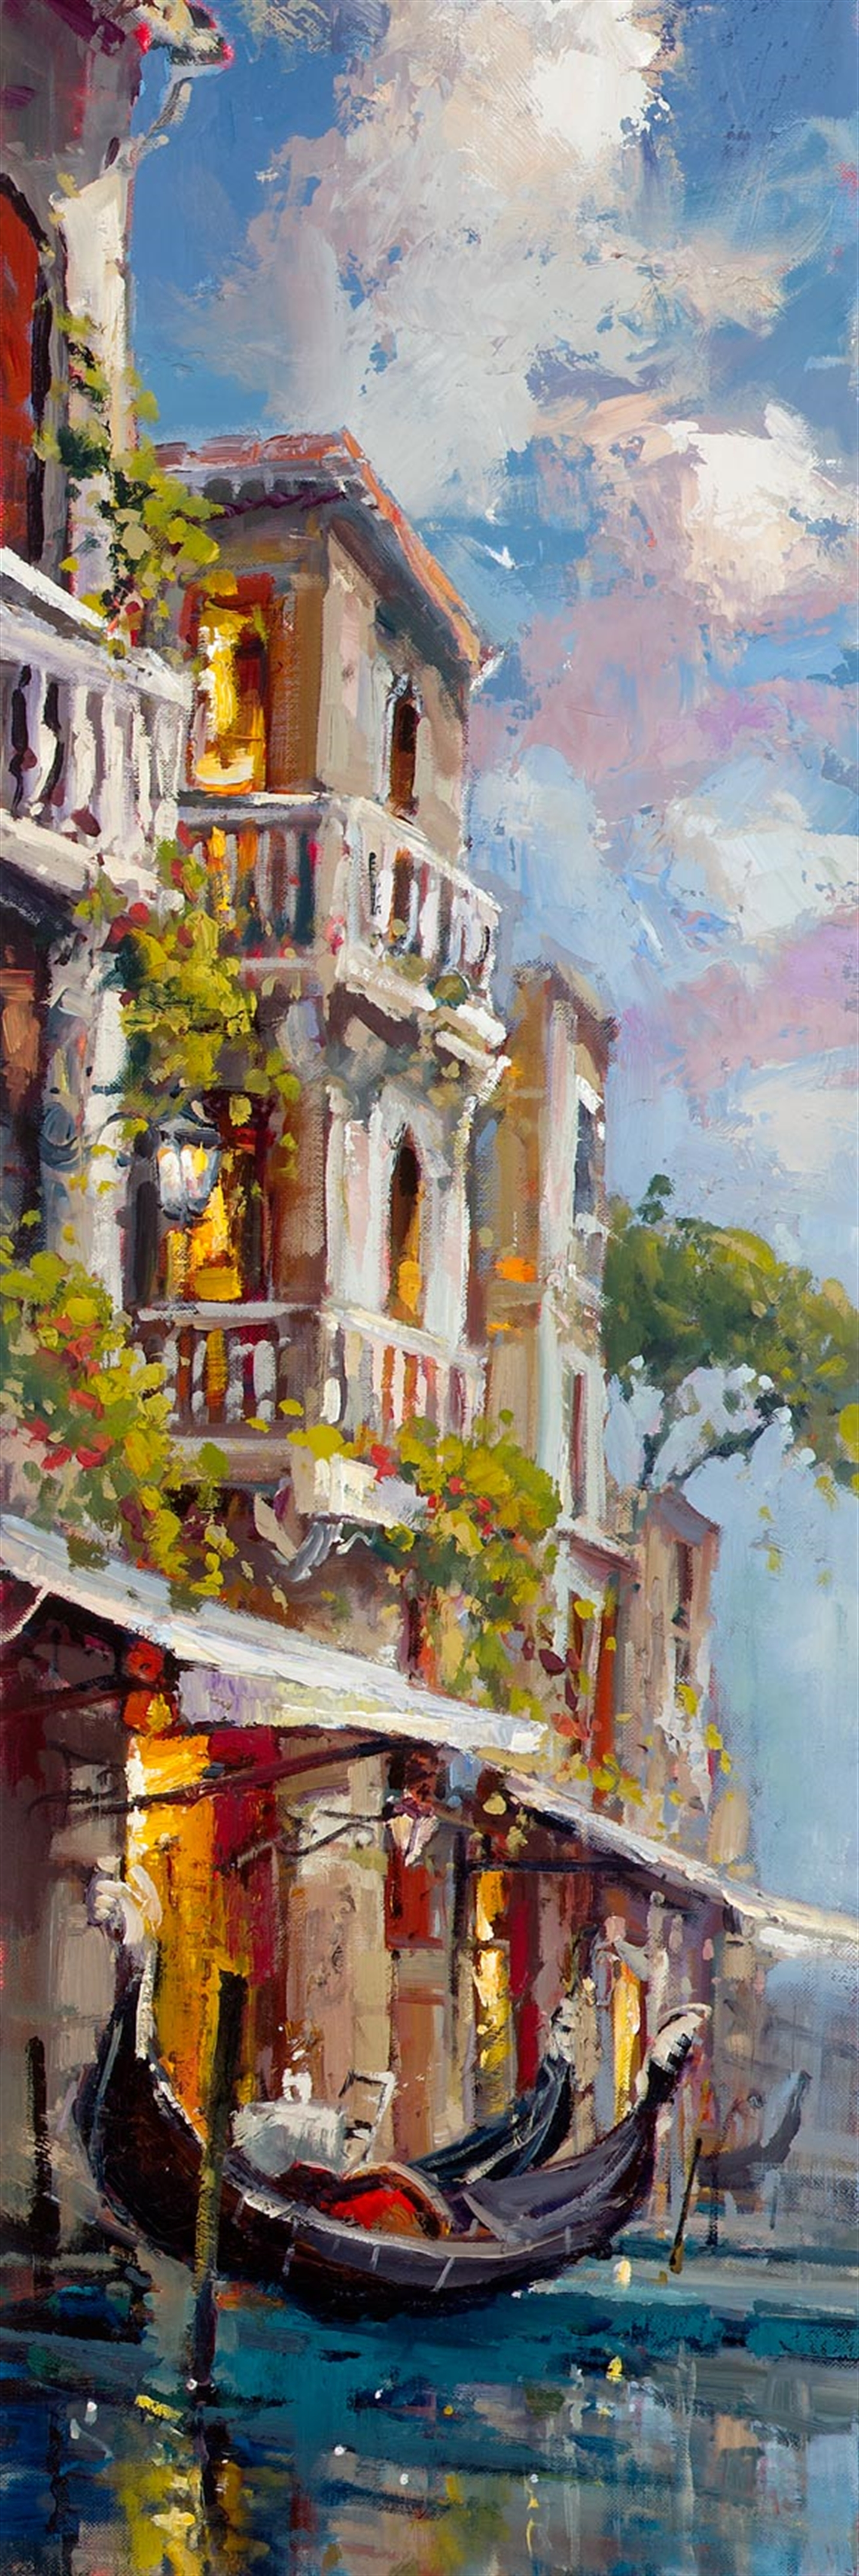 A Day in Venezia by Steven Quartly